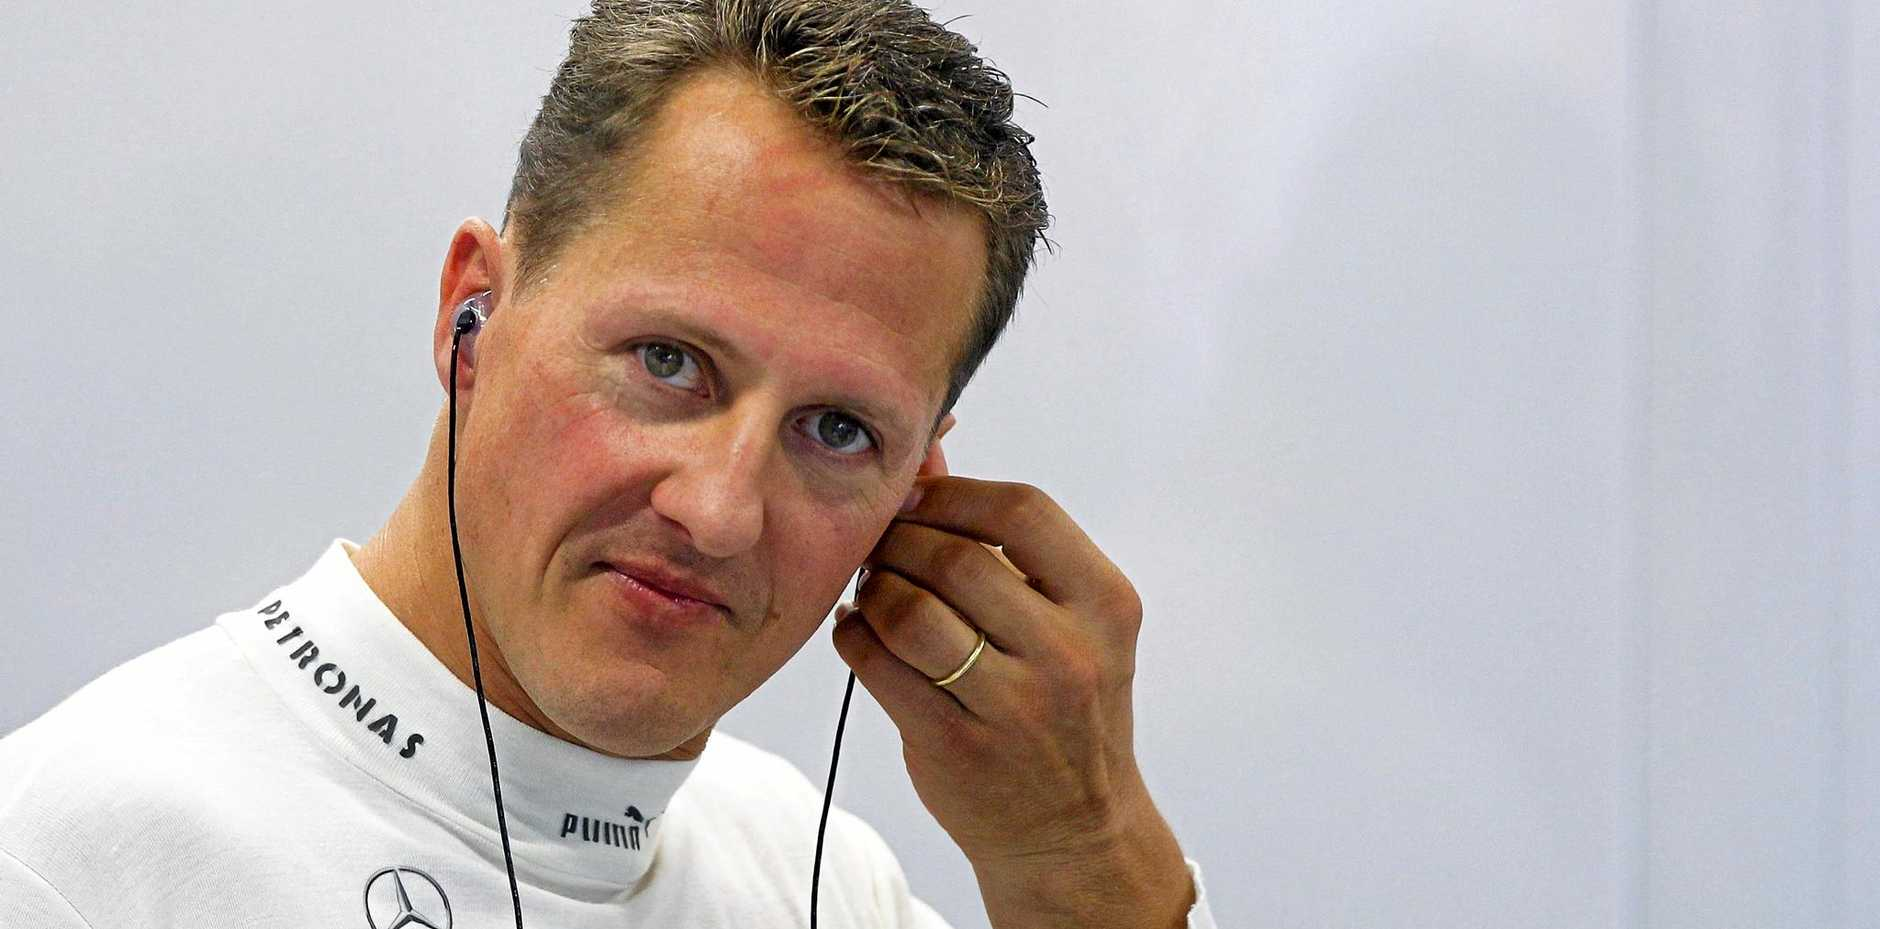 German Formula One driver Michael Schumacher in September 2012. The seven-time Formula One champion is still recovering from a head injury sustained in a ski accident.